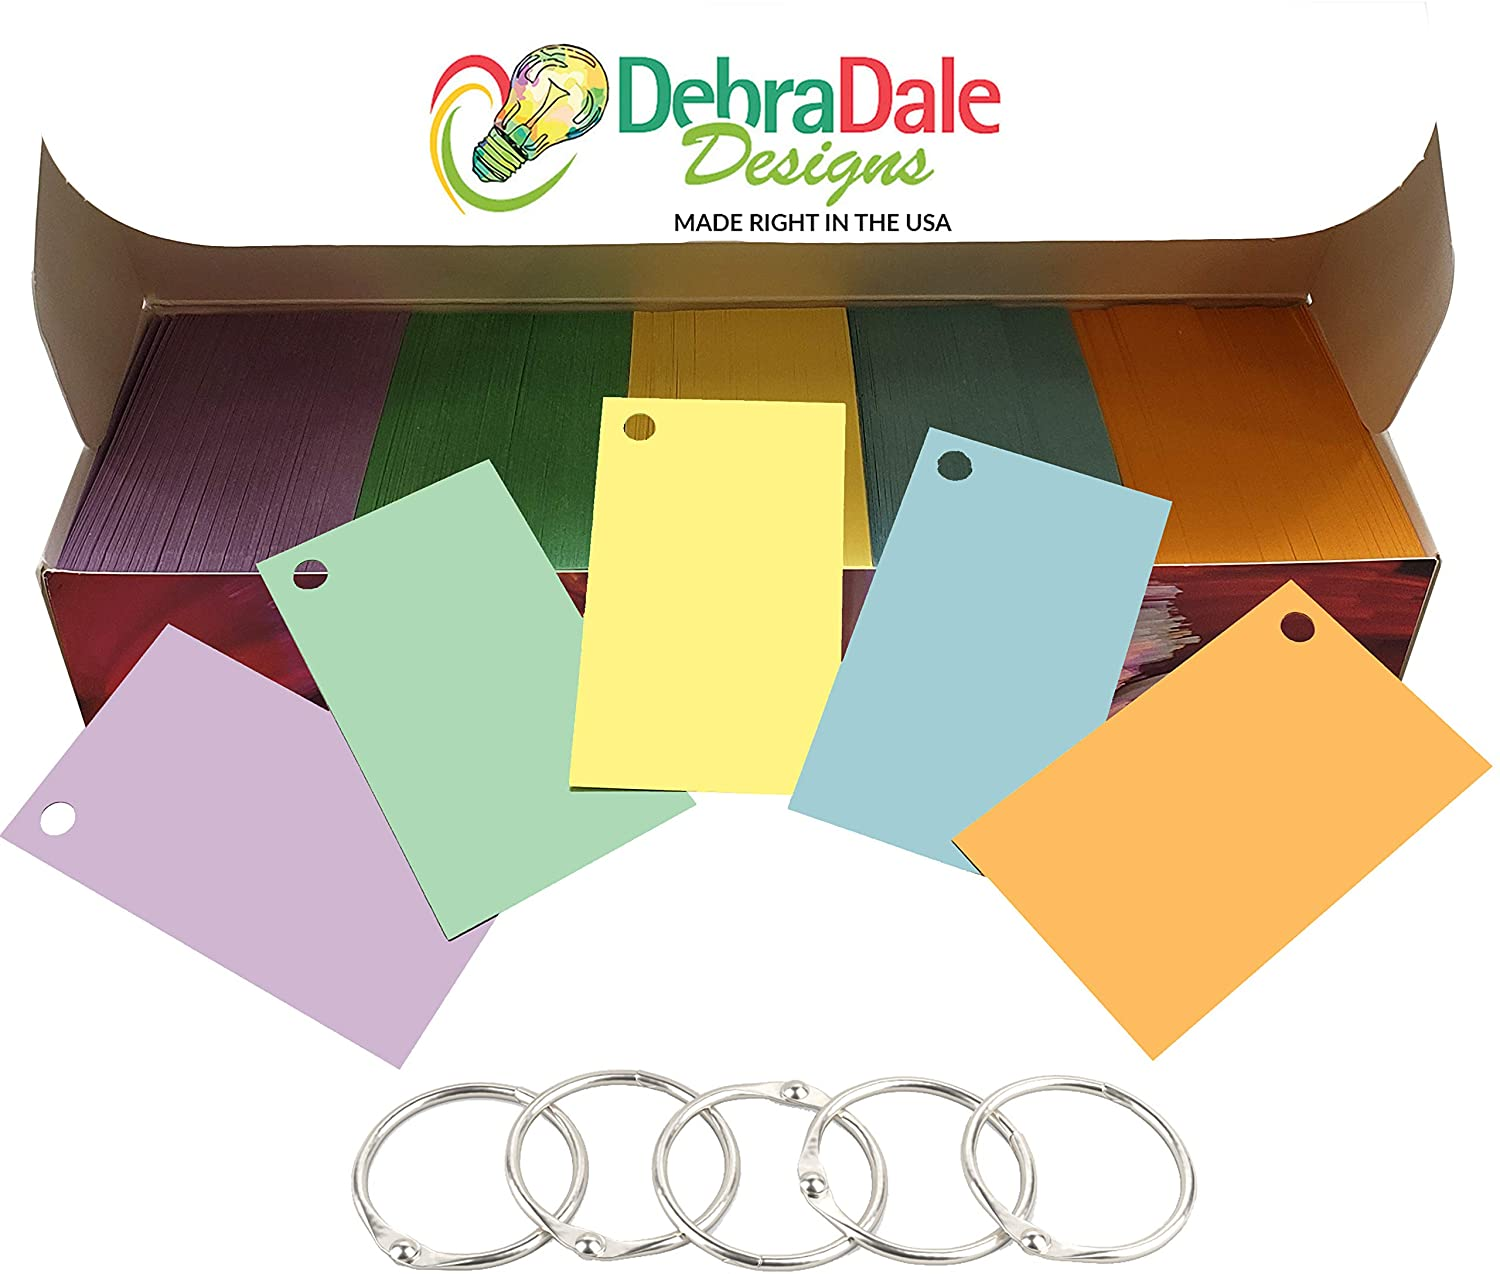 Debra Dale Designs - Made RIGHT in the USA - Blank Flash Cards with Rings in 5 Pastel Colors - 1100 Index Cards - Hole Punched with 5 Rings, 2